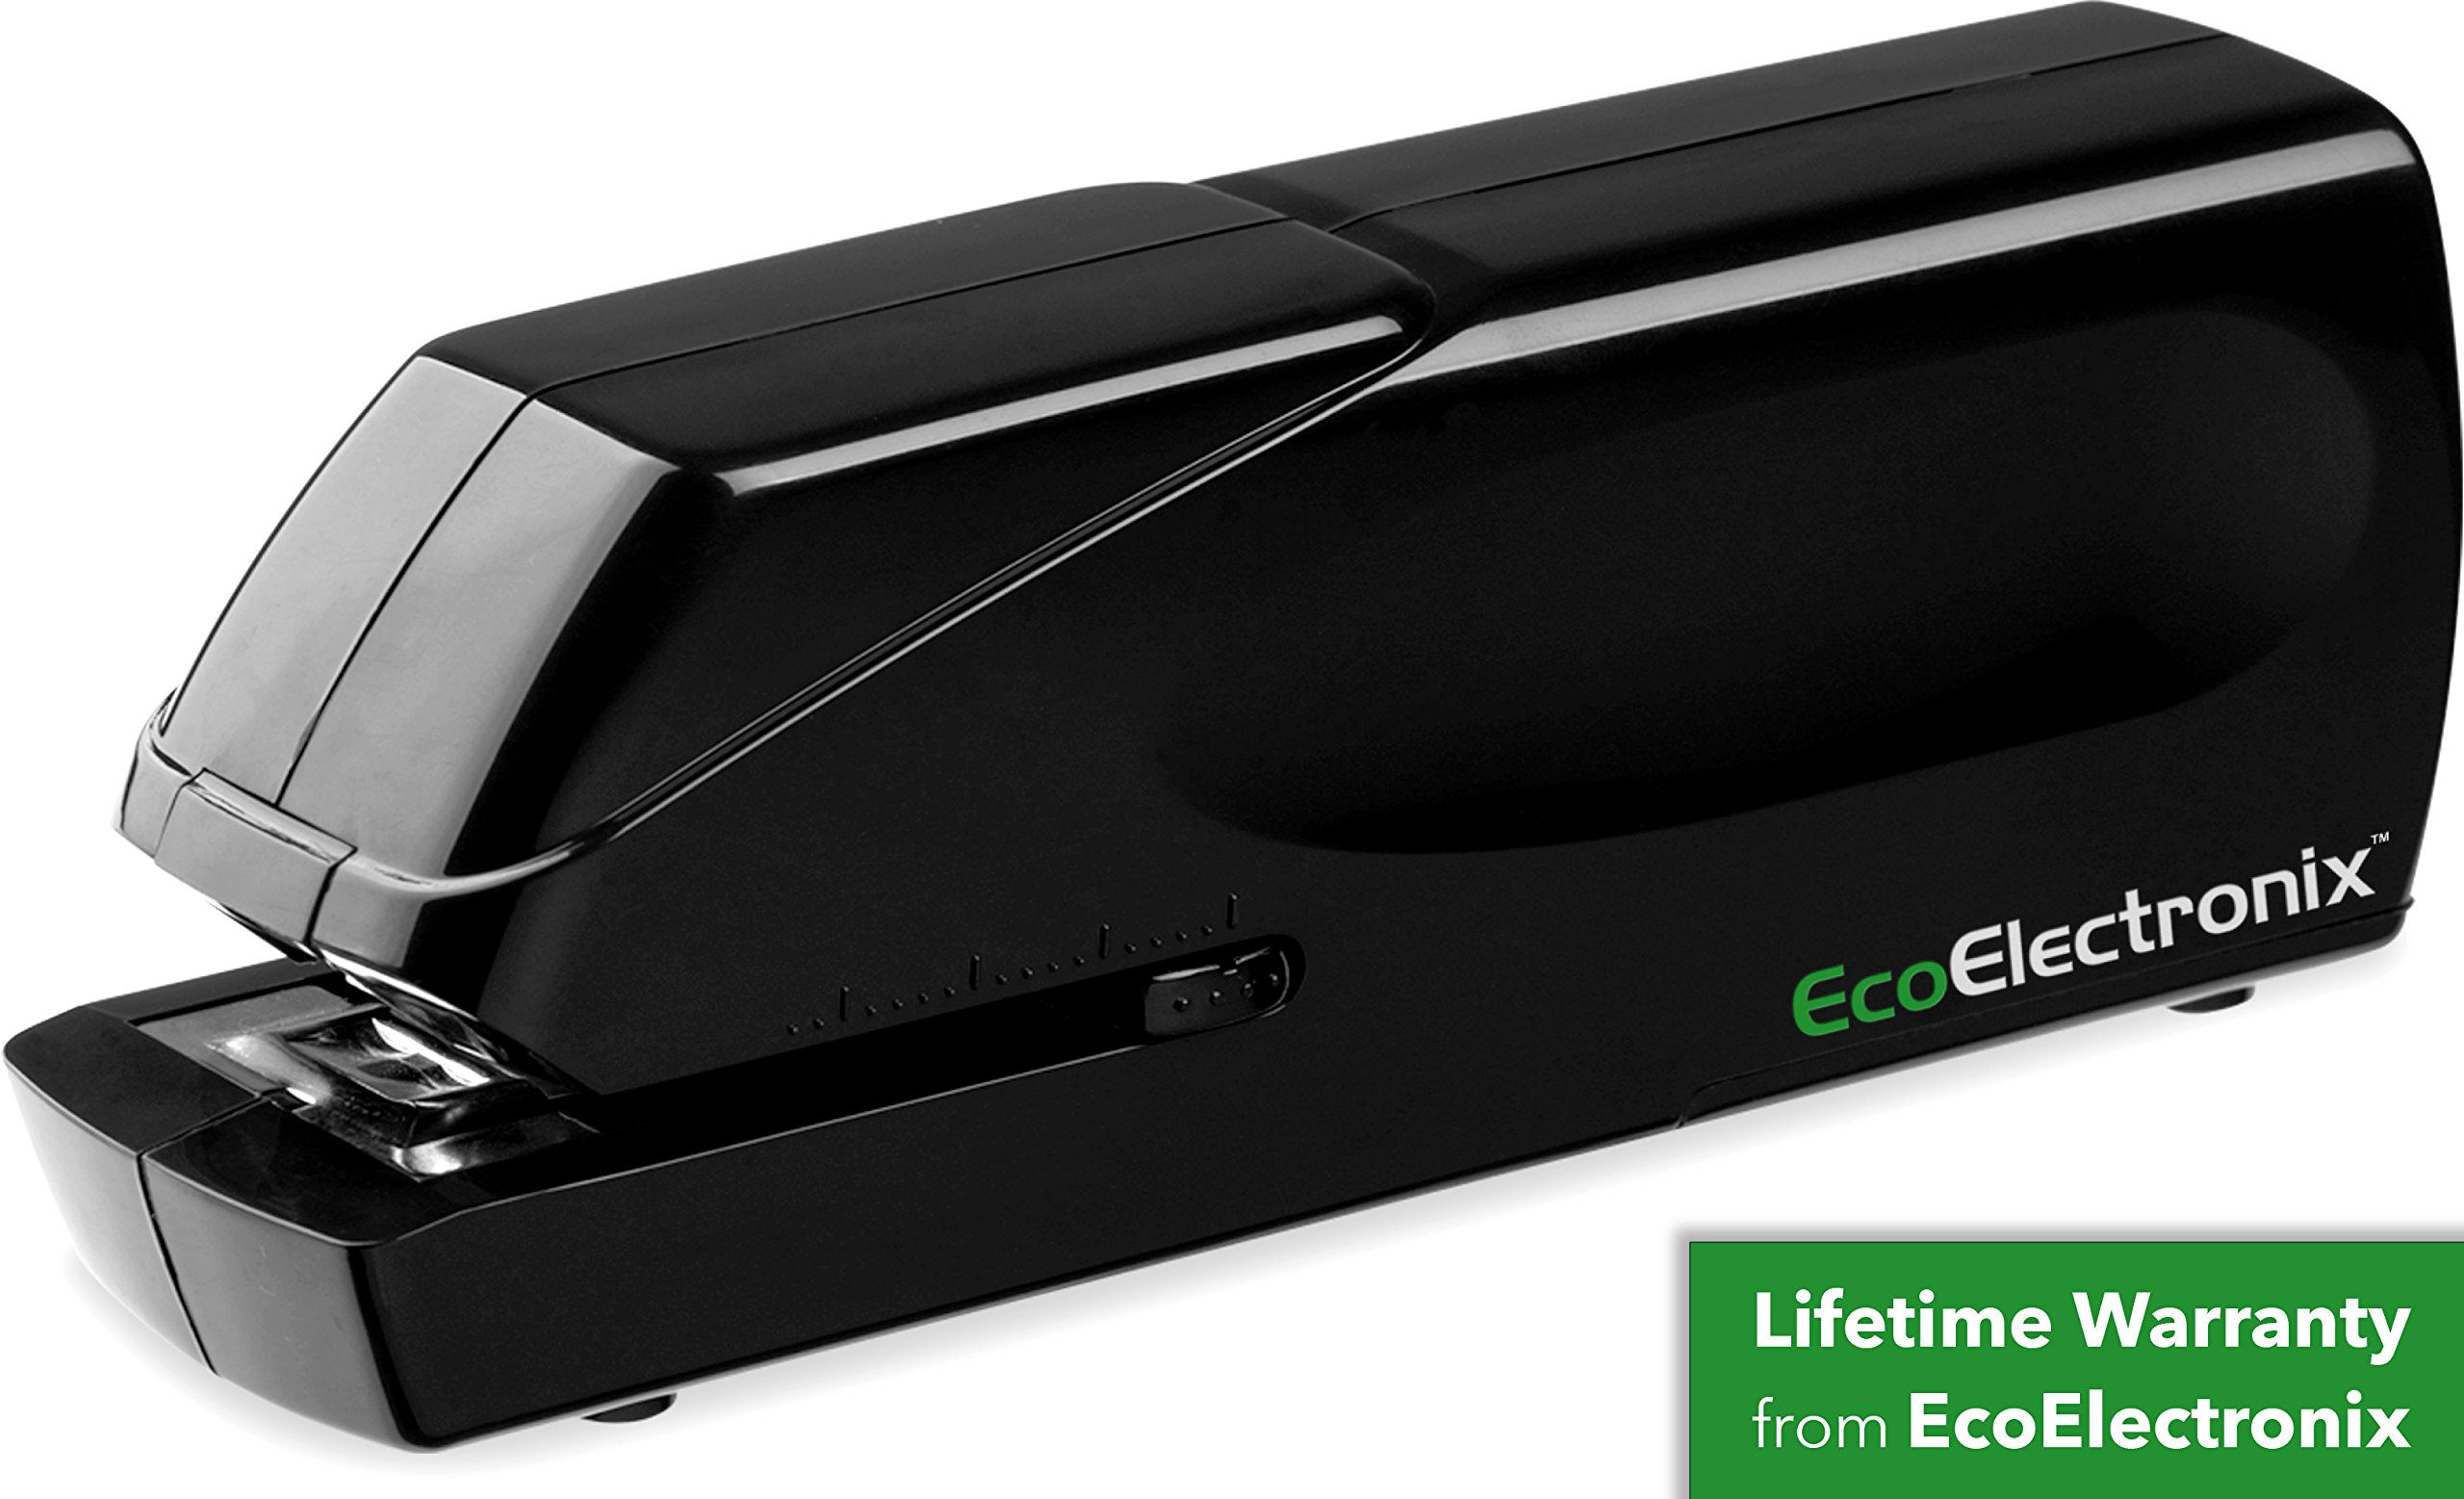 Battery Operated Desk Stapler Related Keywords & Suggestions